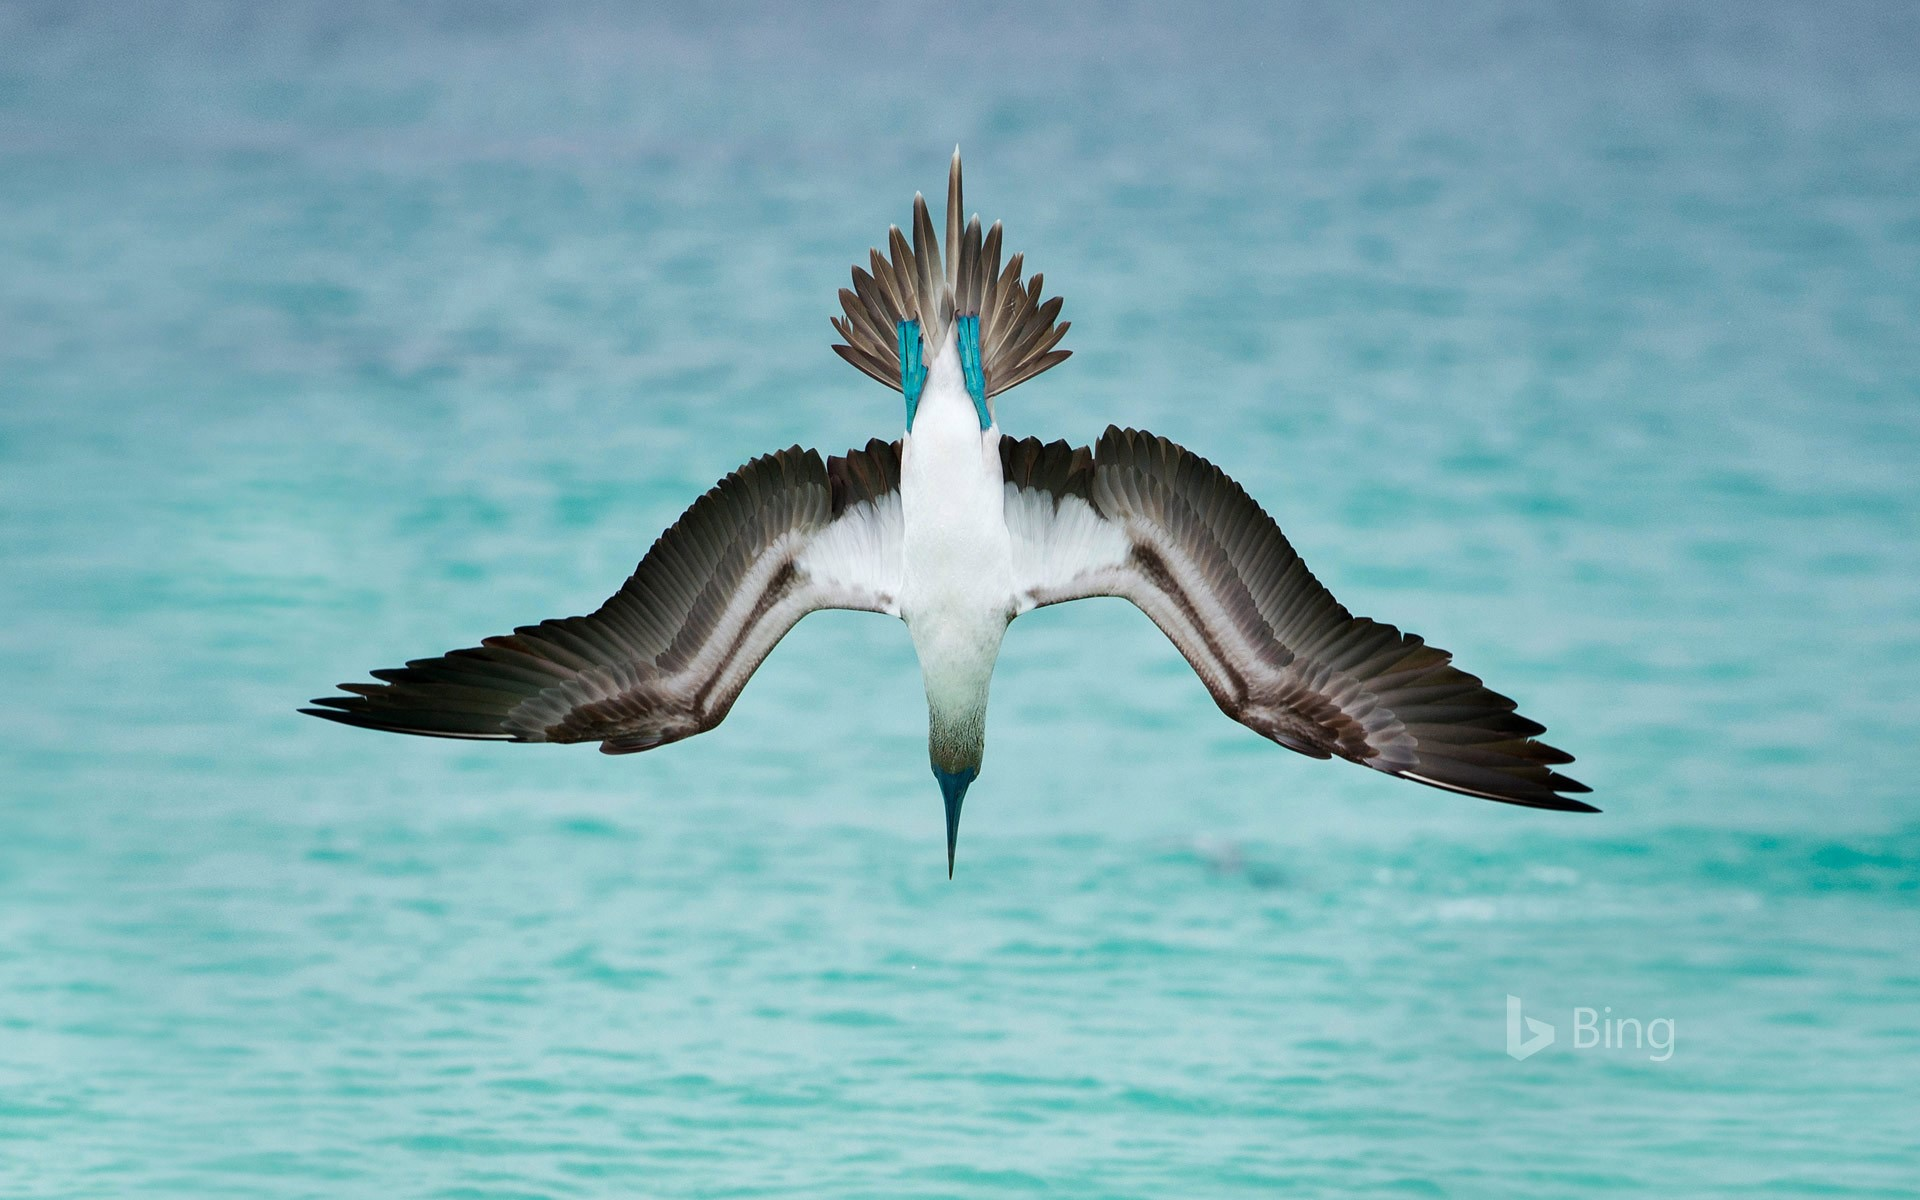 A blue-footed booby dives off San Cristóbal Island, Ecuador